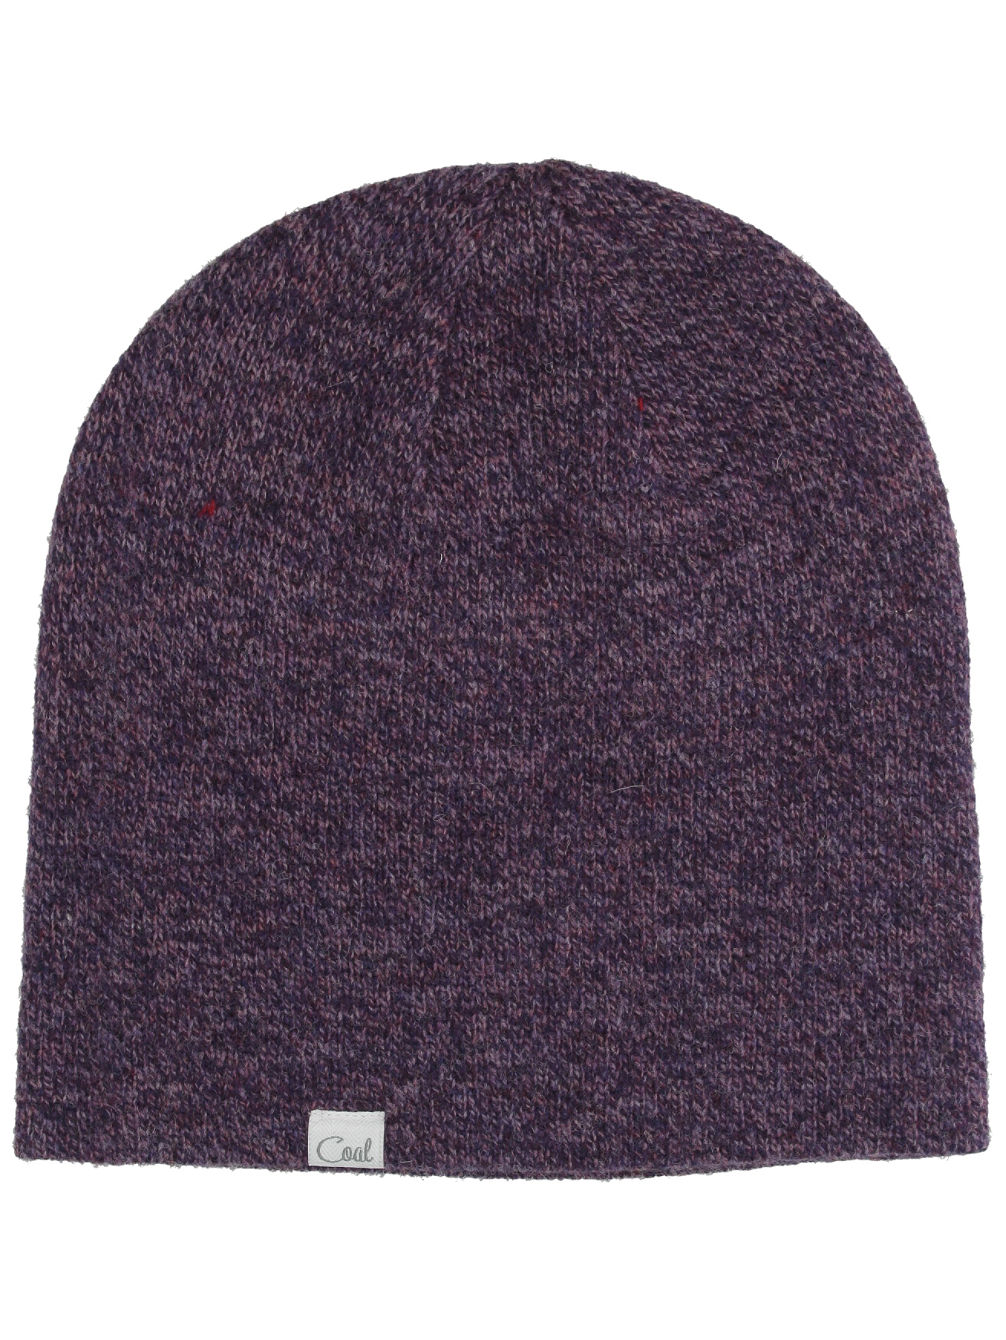 The Lauren Beanie